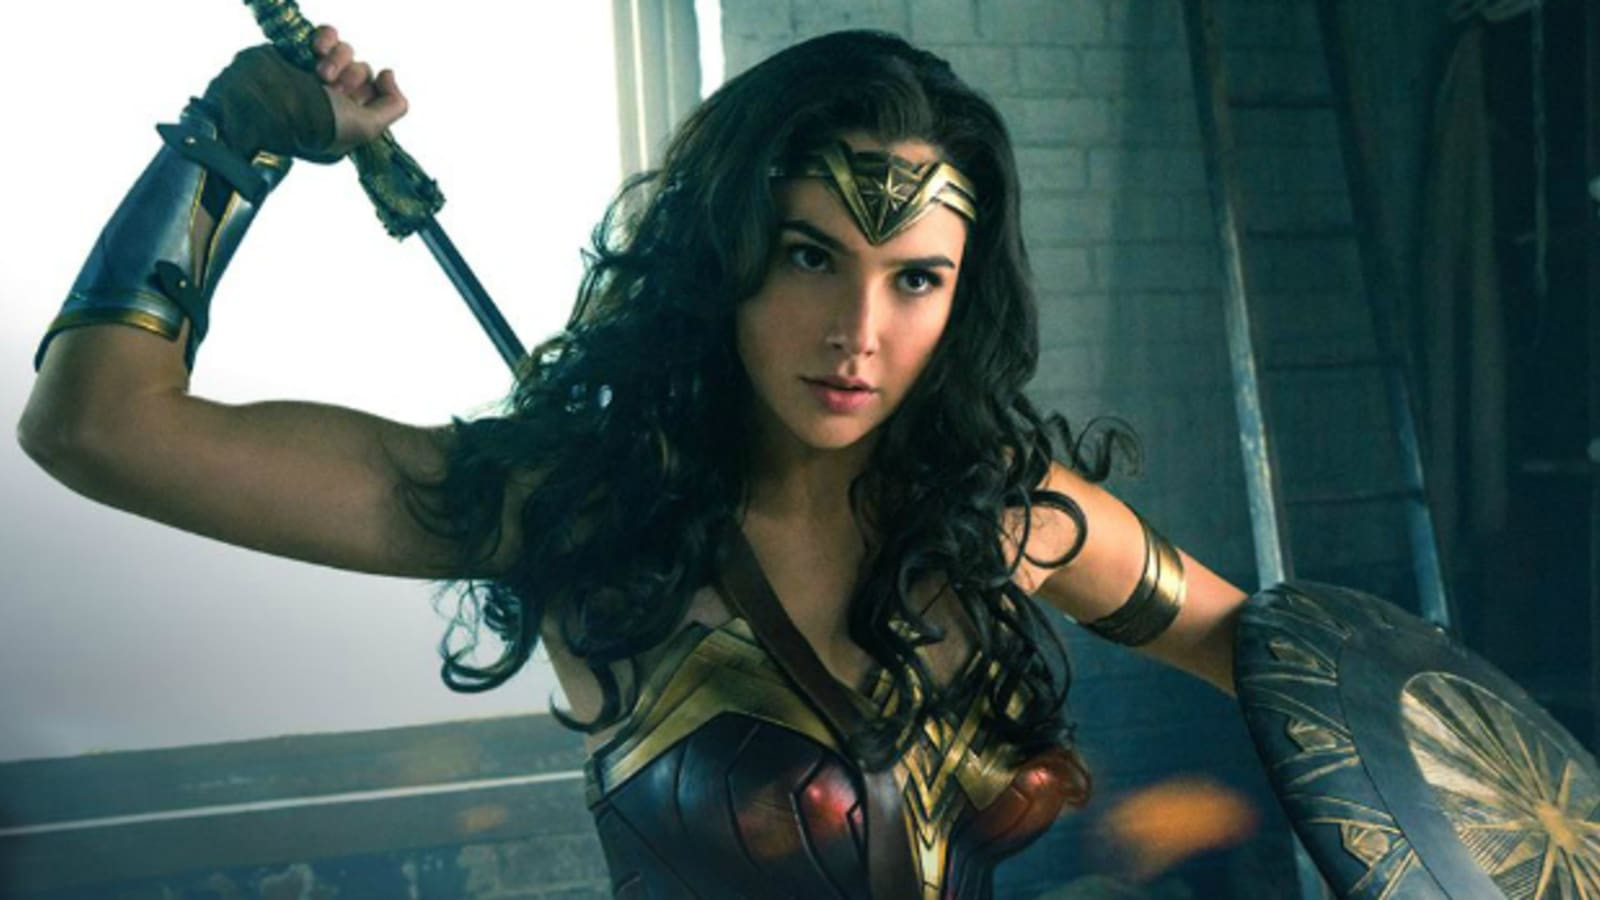 The Real Wonder Woman: Meet the Director Who Is Breaking Box Office Records